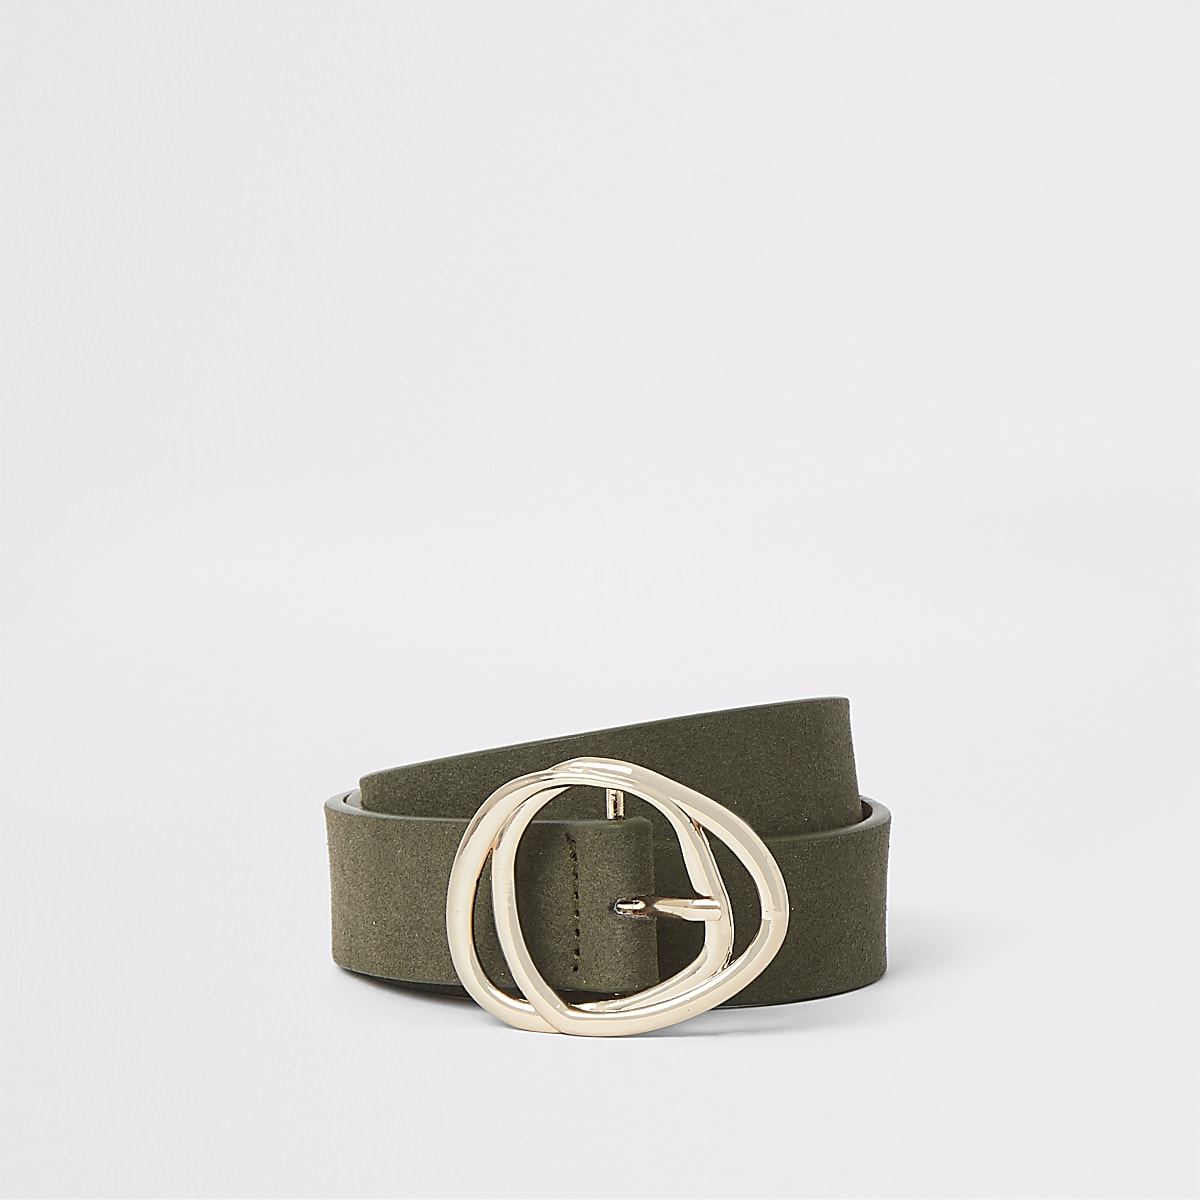 Khaki faux suede gold tone double buckle belt